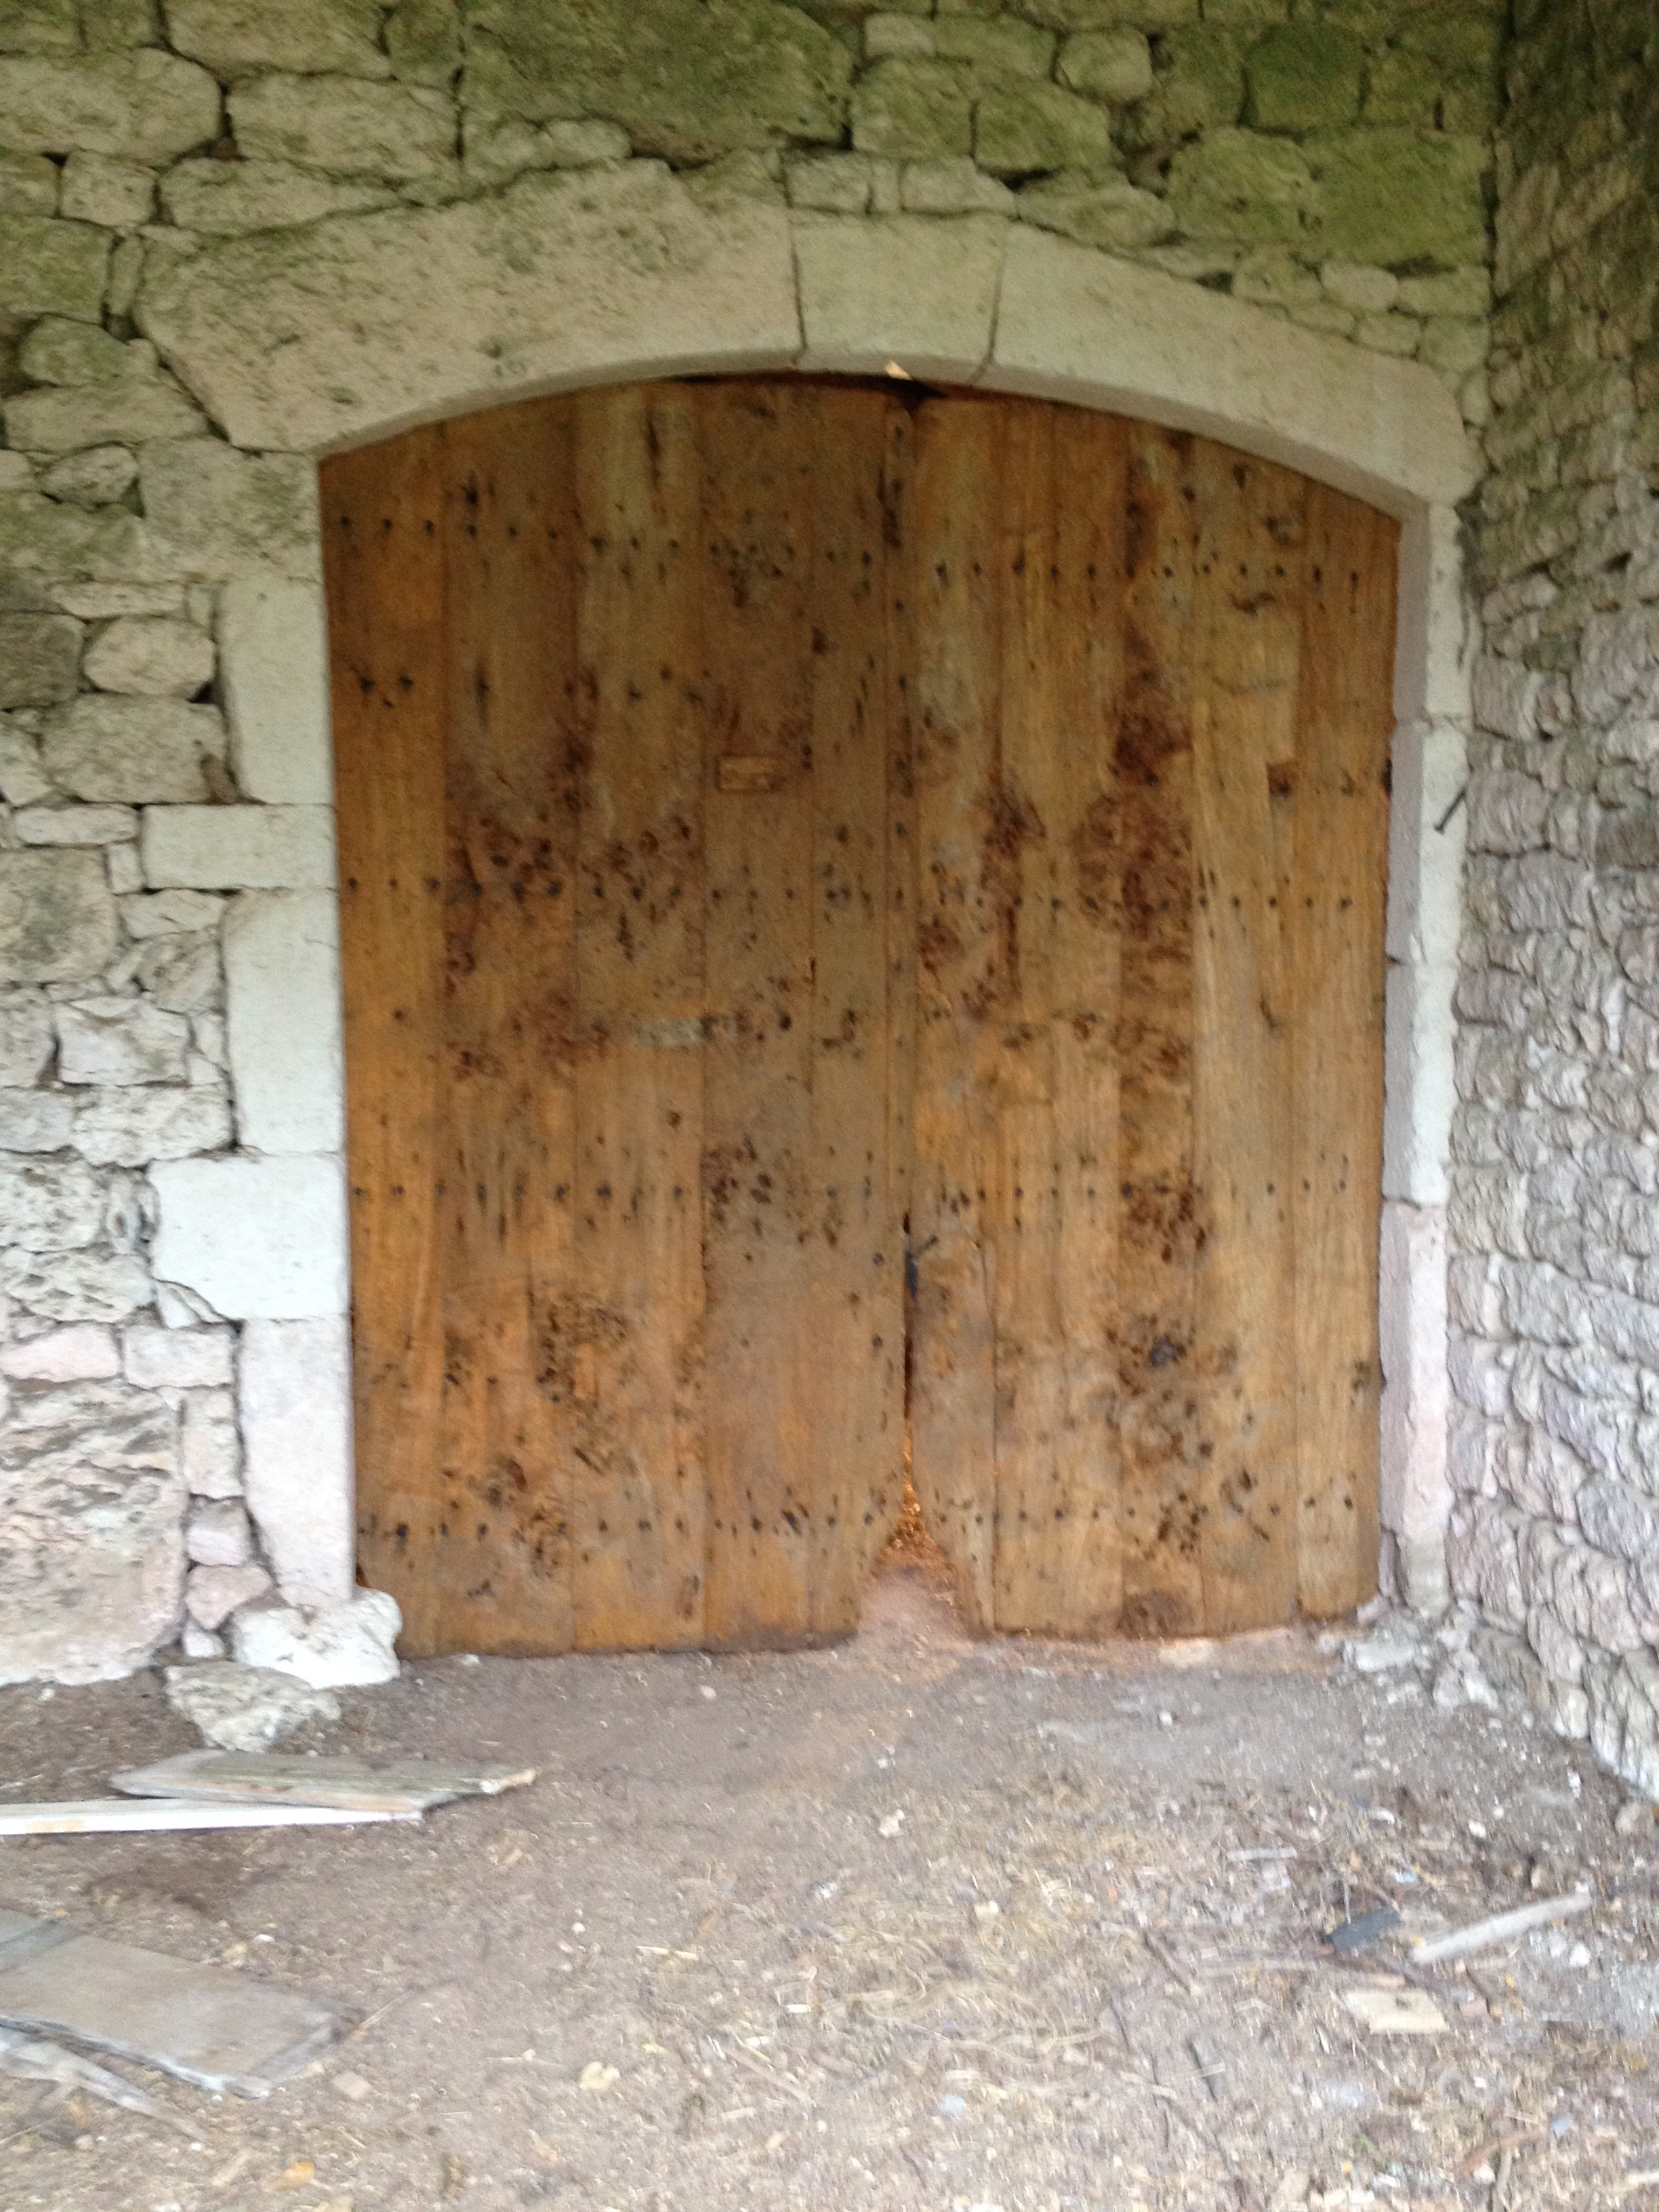 The barn doors.